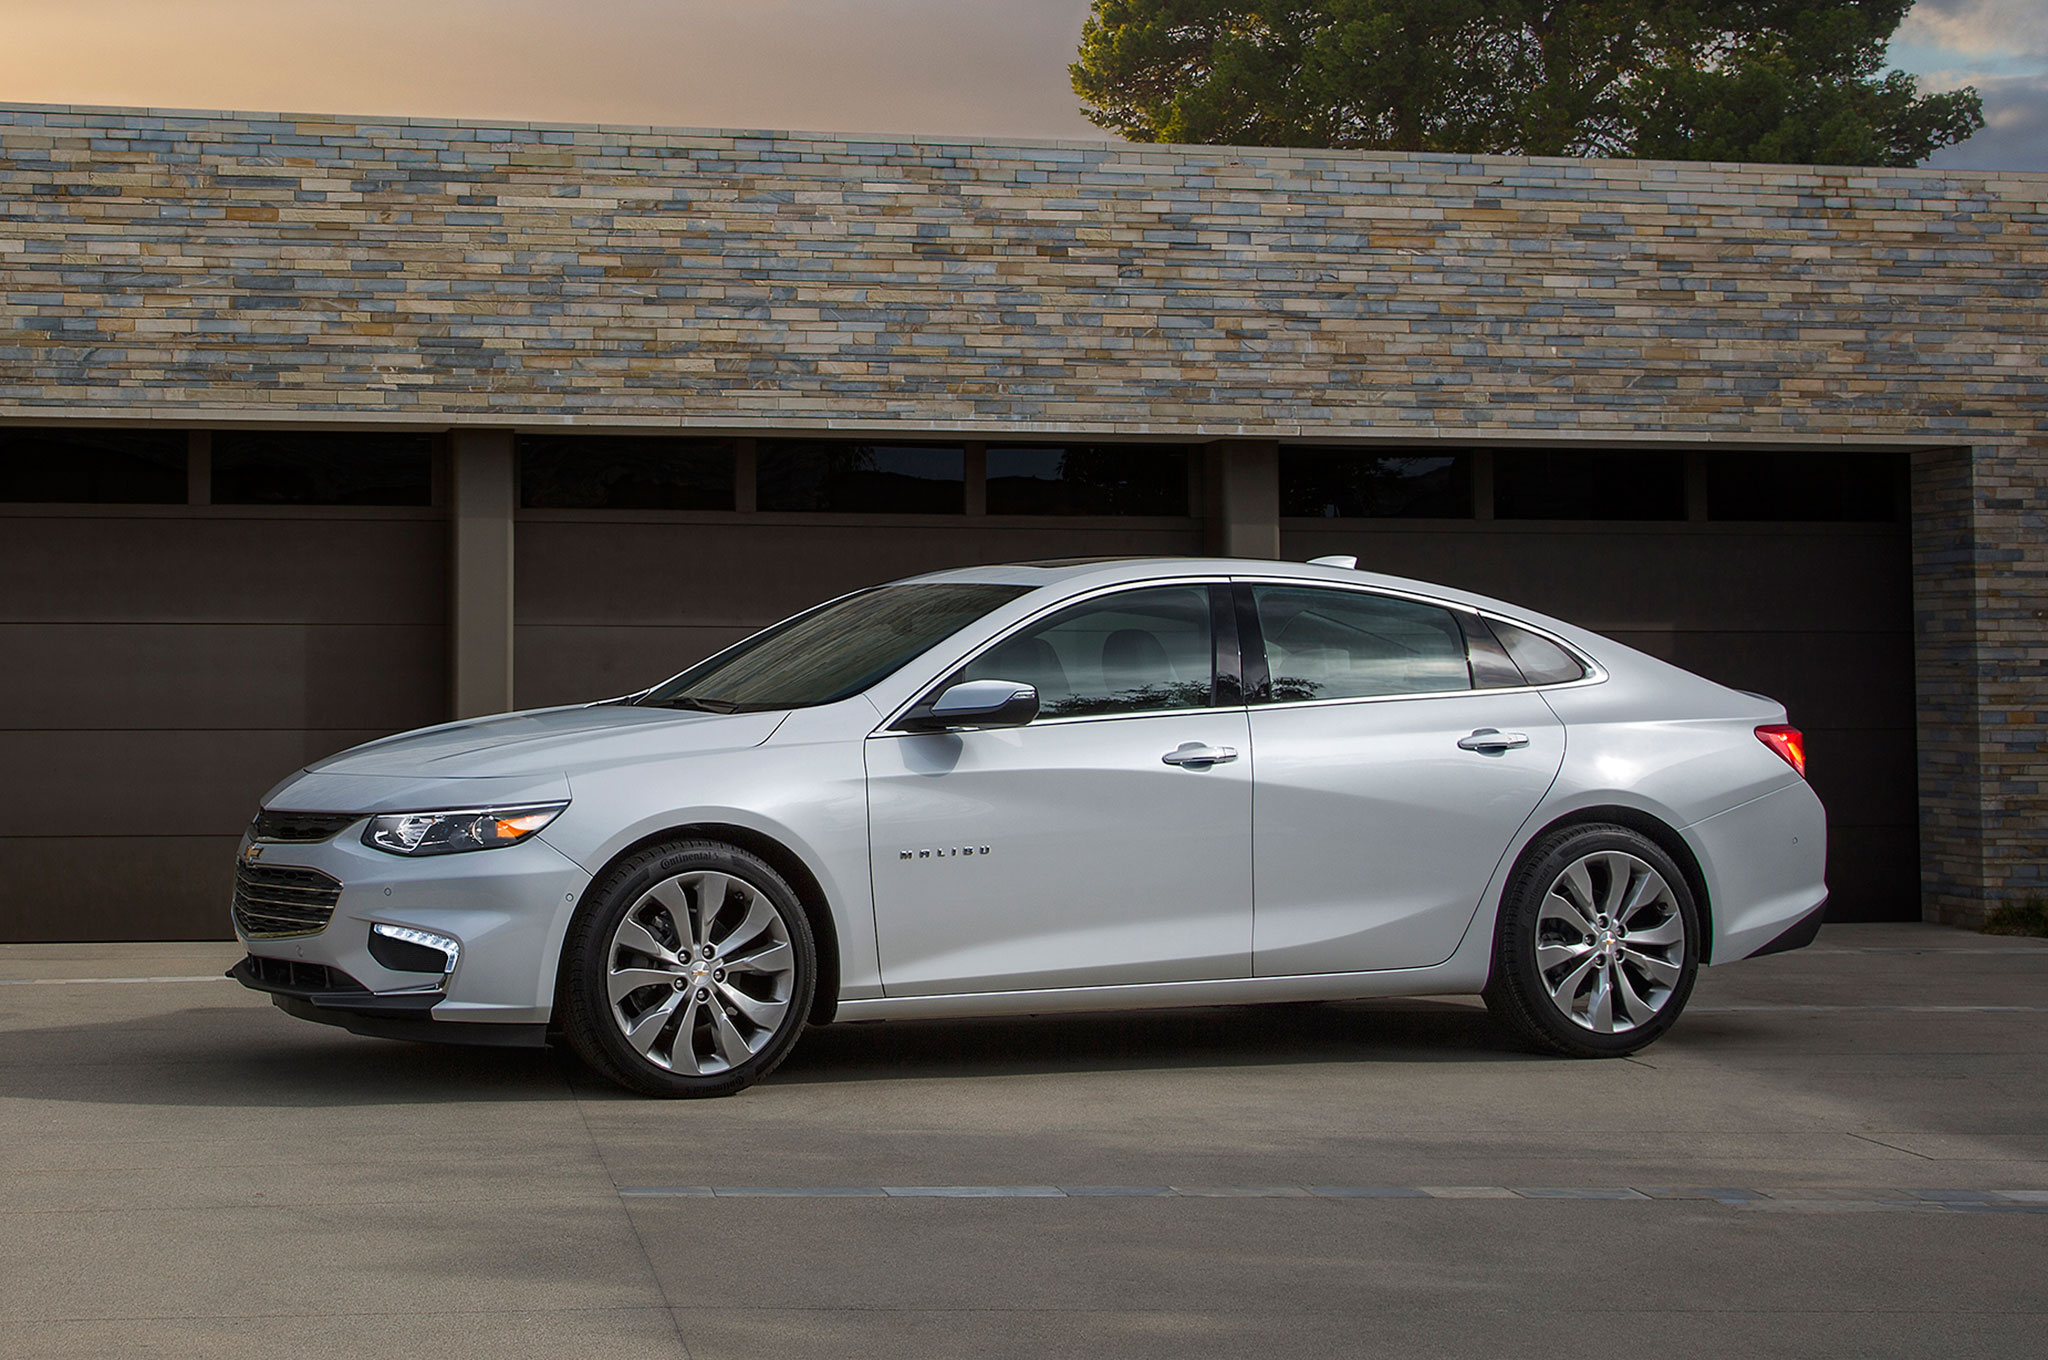 2016 Chevrolet Malibu Front Three Quarter Garage Door